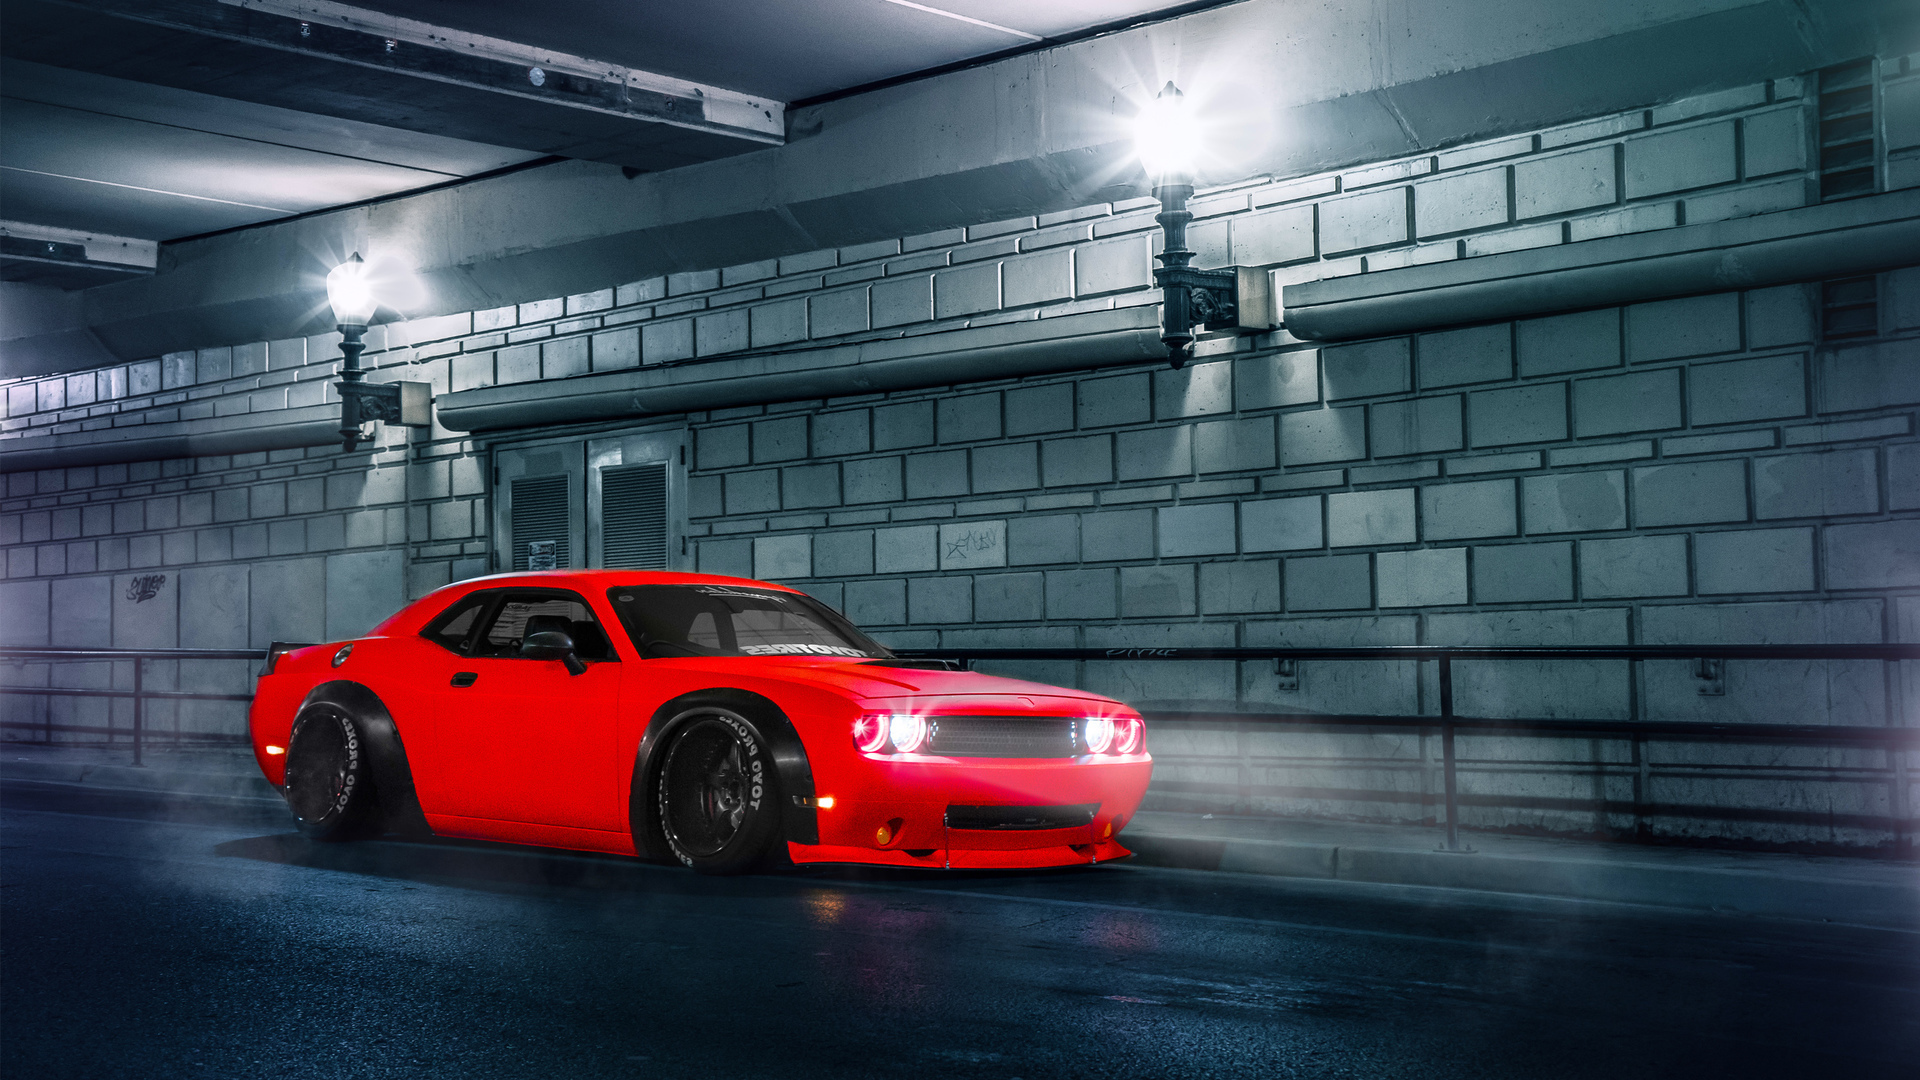 2015 Dodge Challenger SRT (1920x1080)